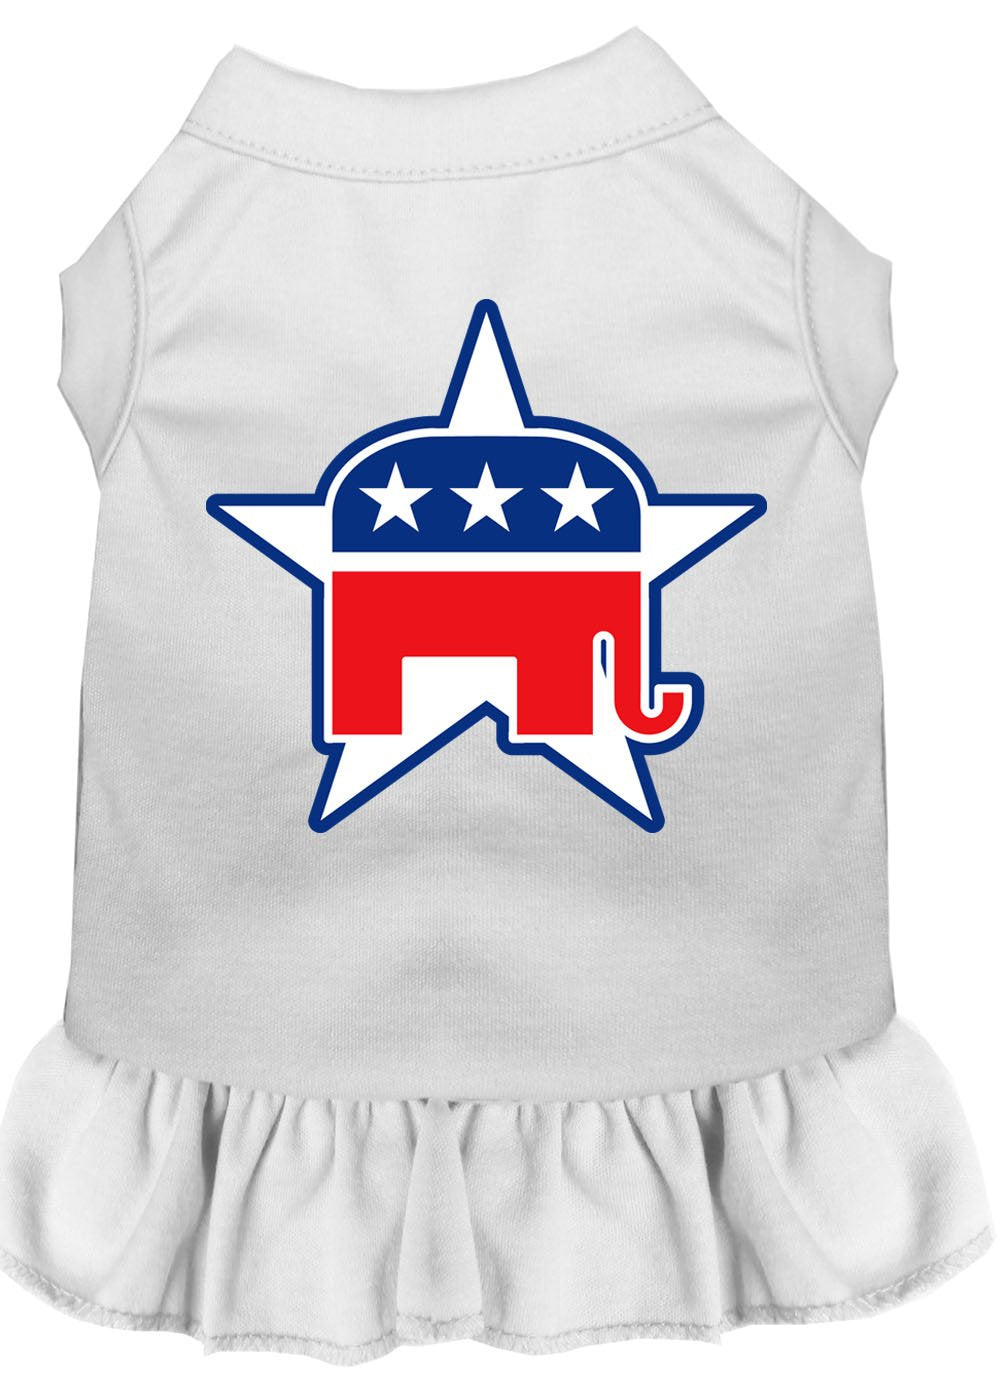 Republican Dog Dress Outfits white